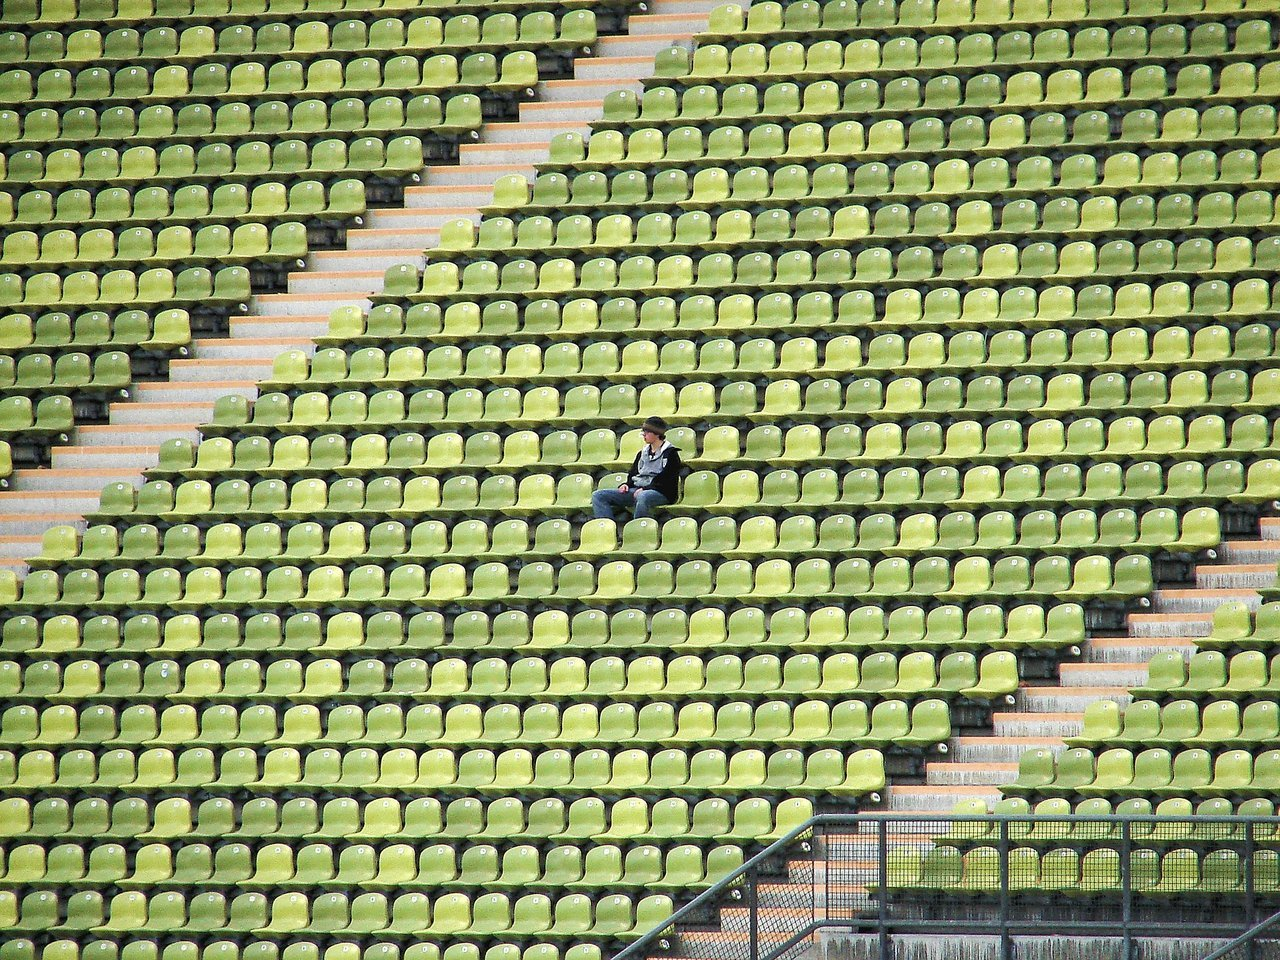 Teen sitting alone in bleachers